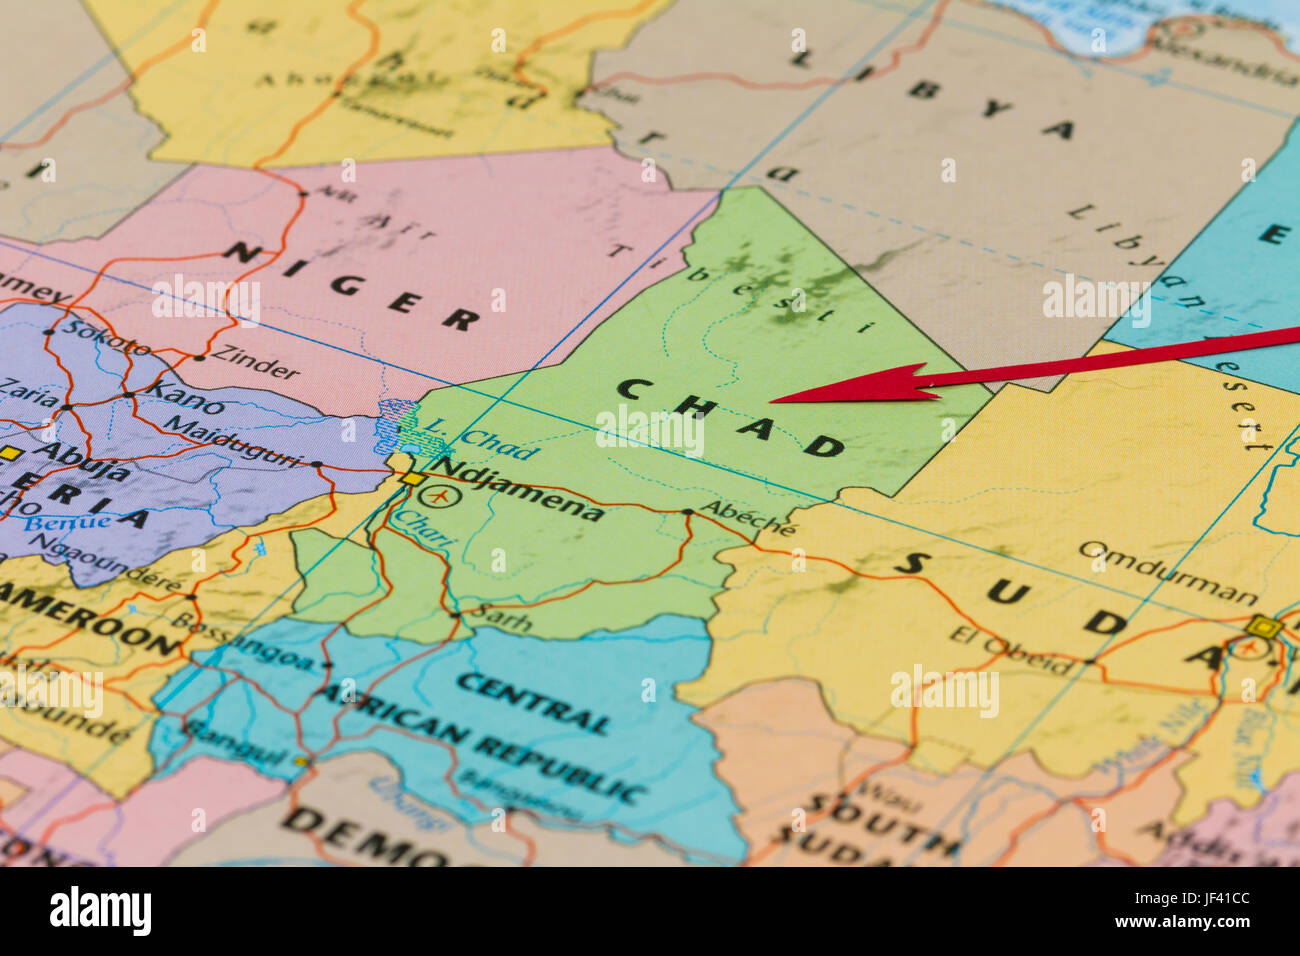 Photo of Chad. Country indicated by red arrow. Country on African continent. Stock Photo